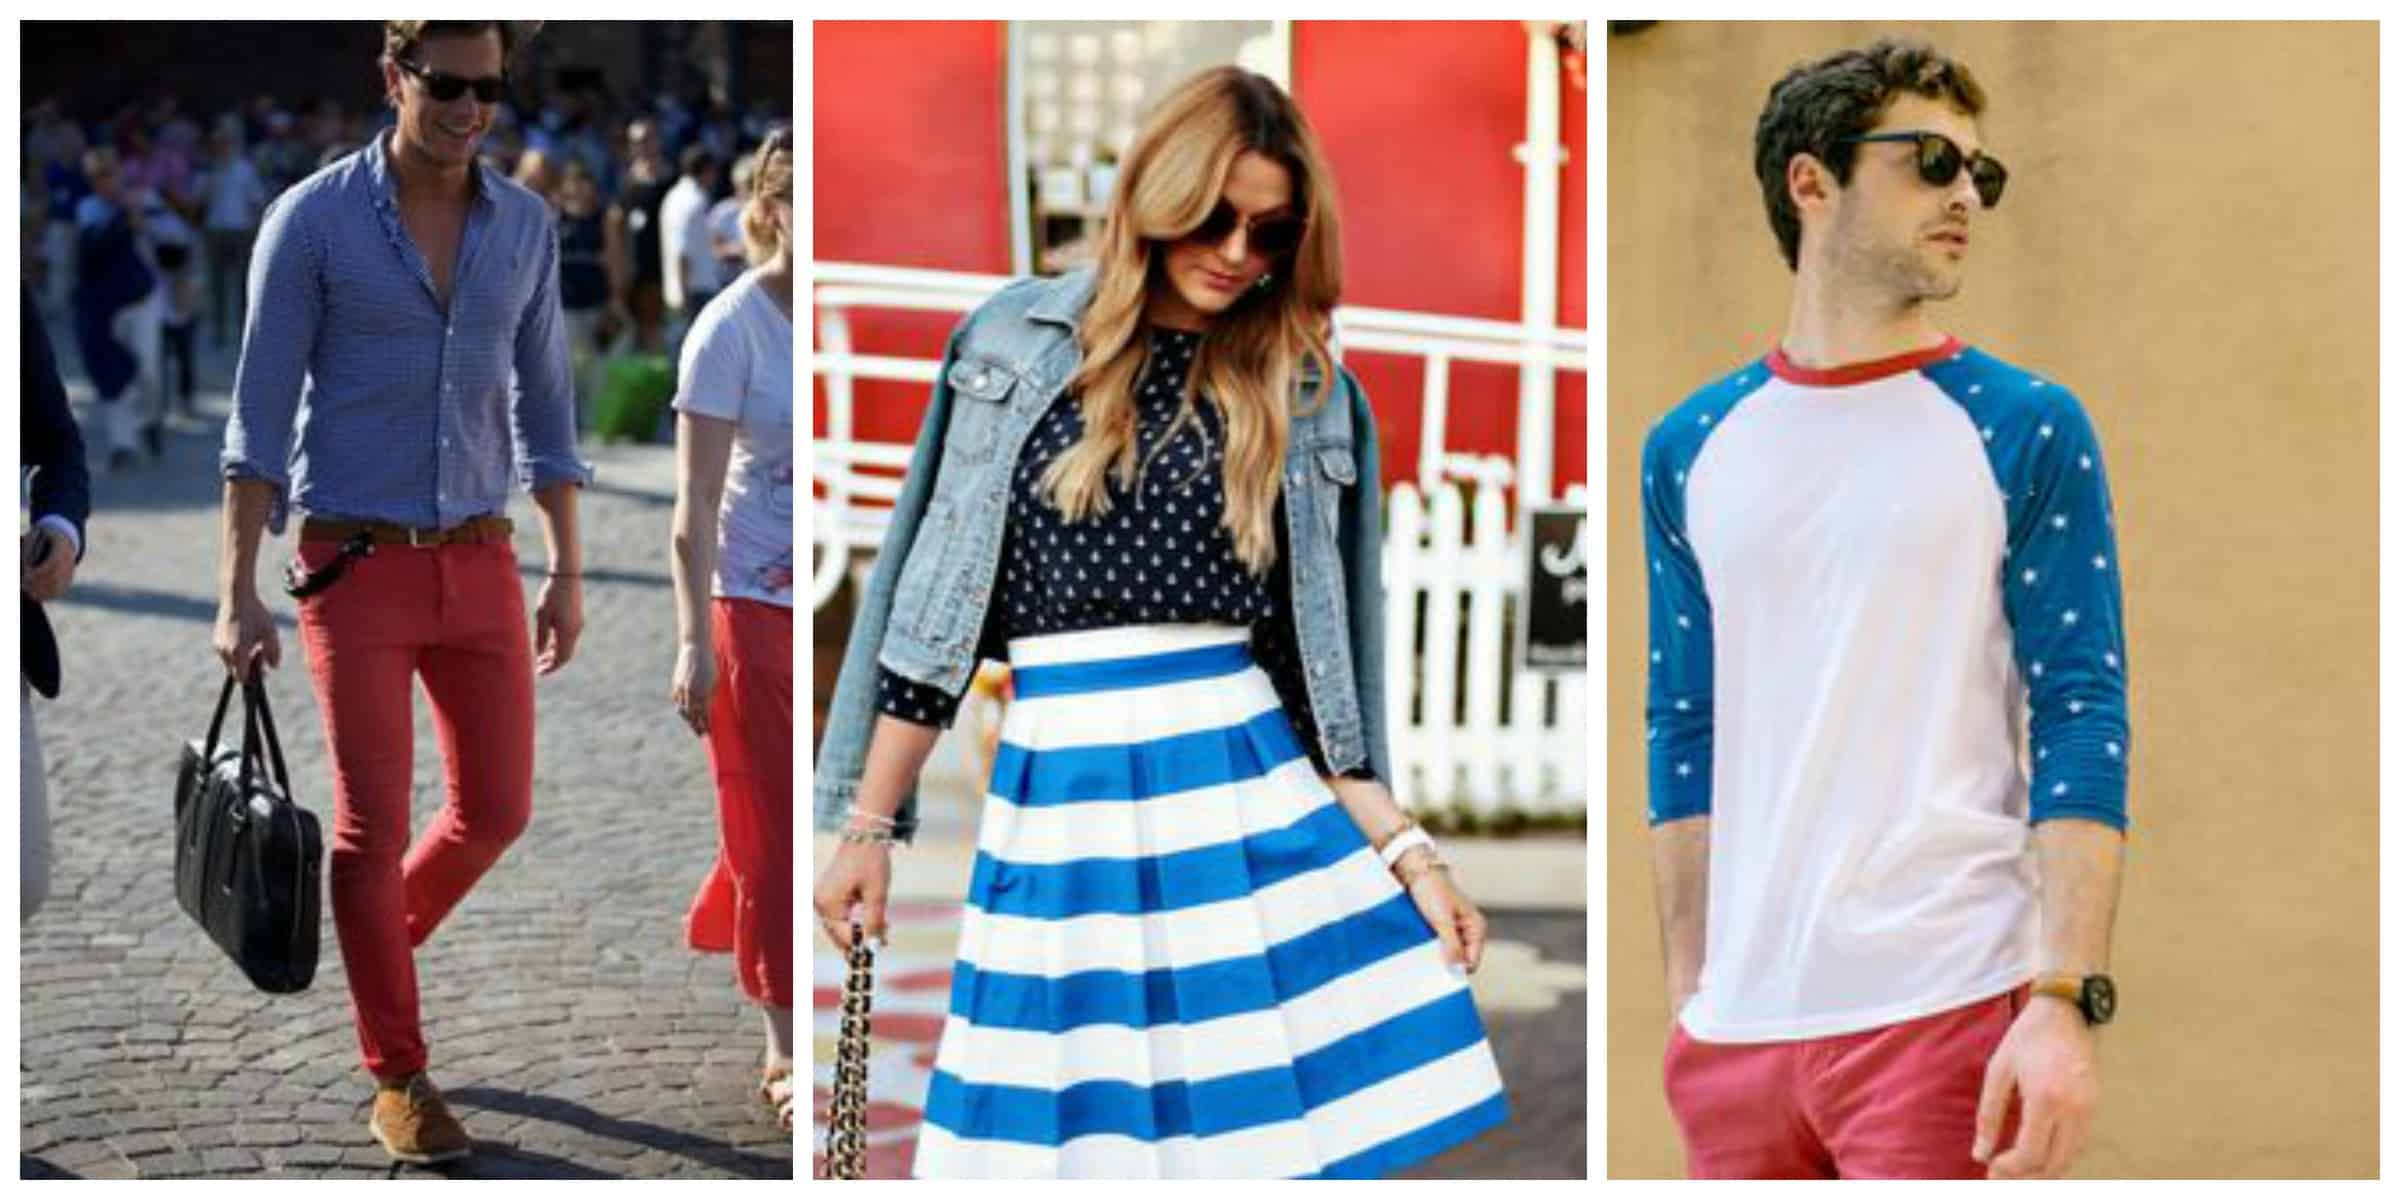 streetstyle-4th-july